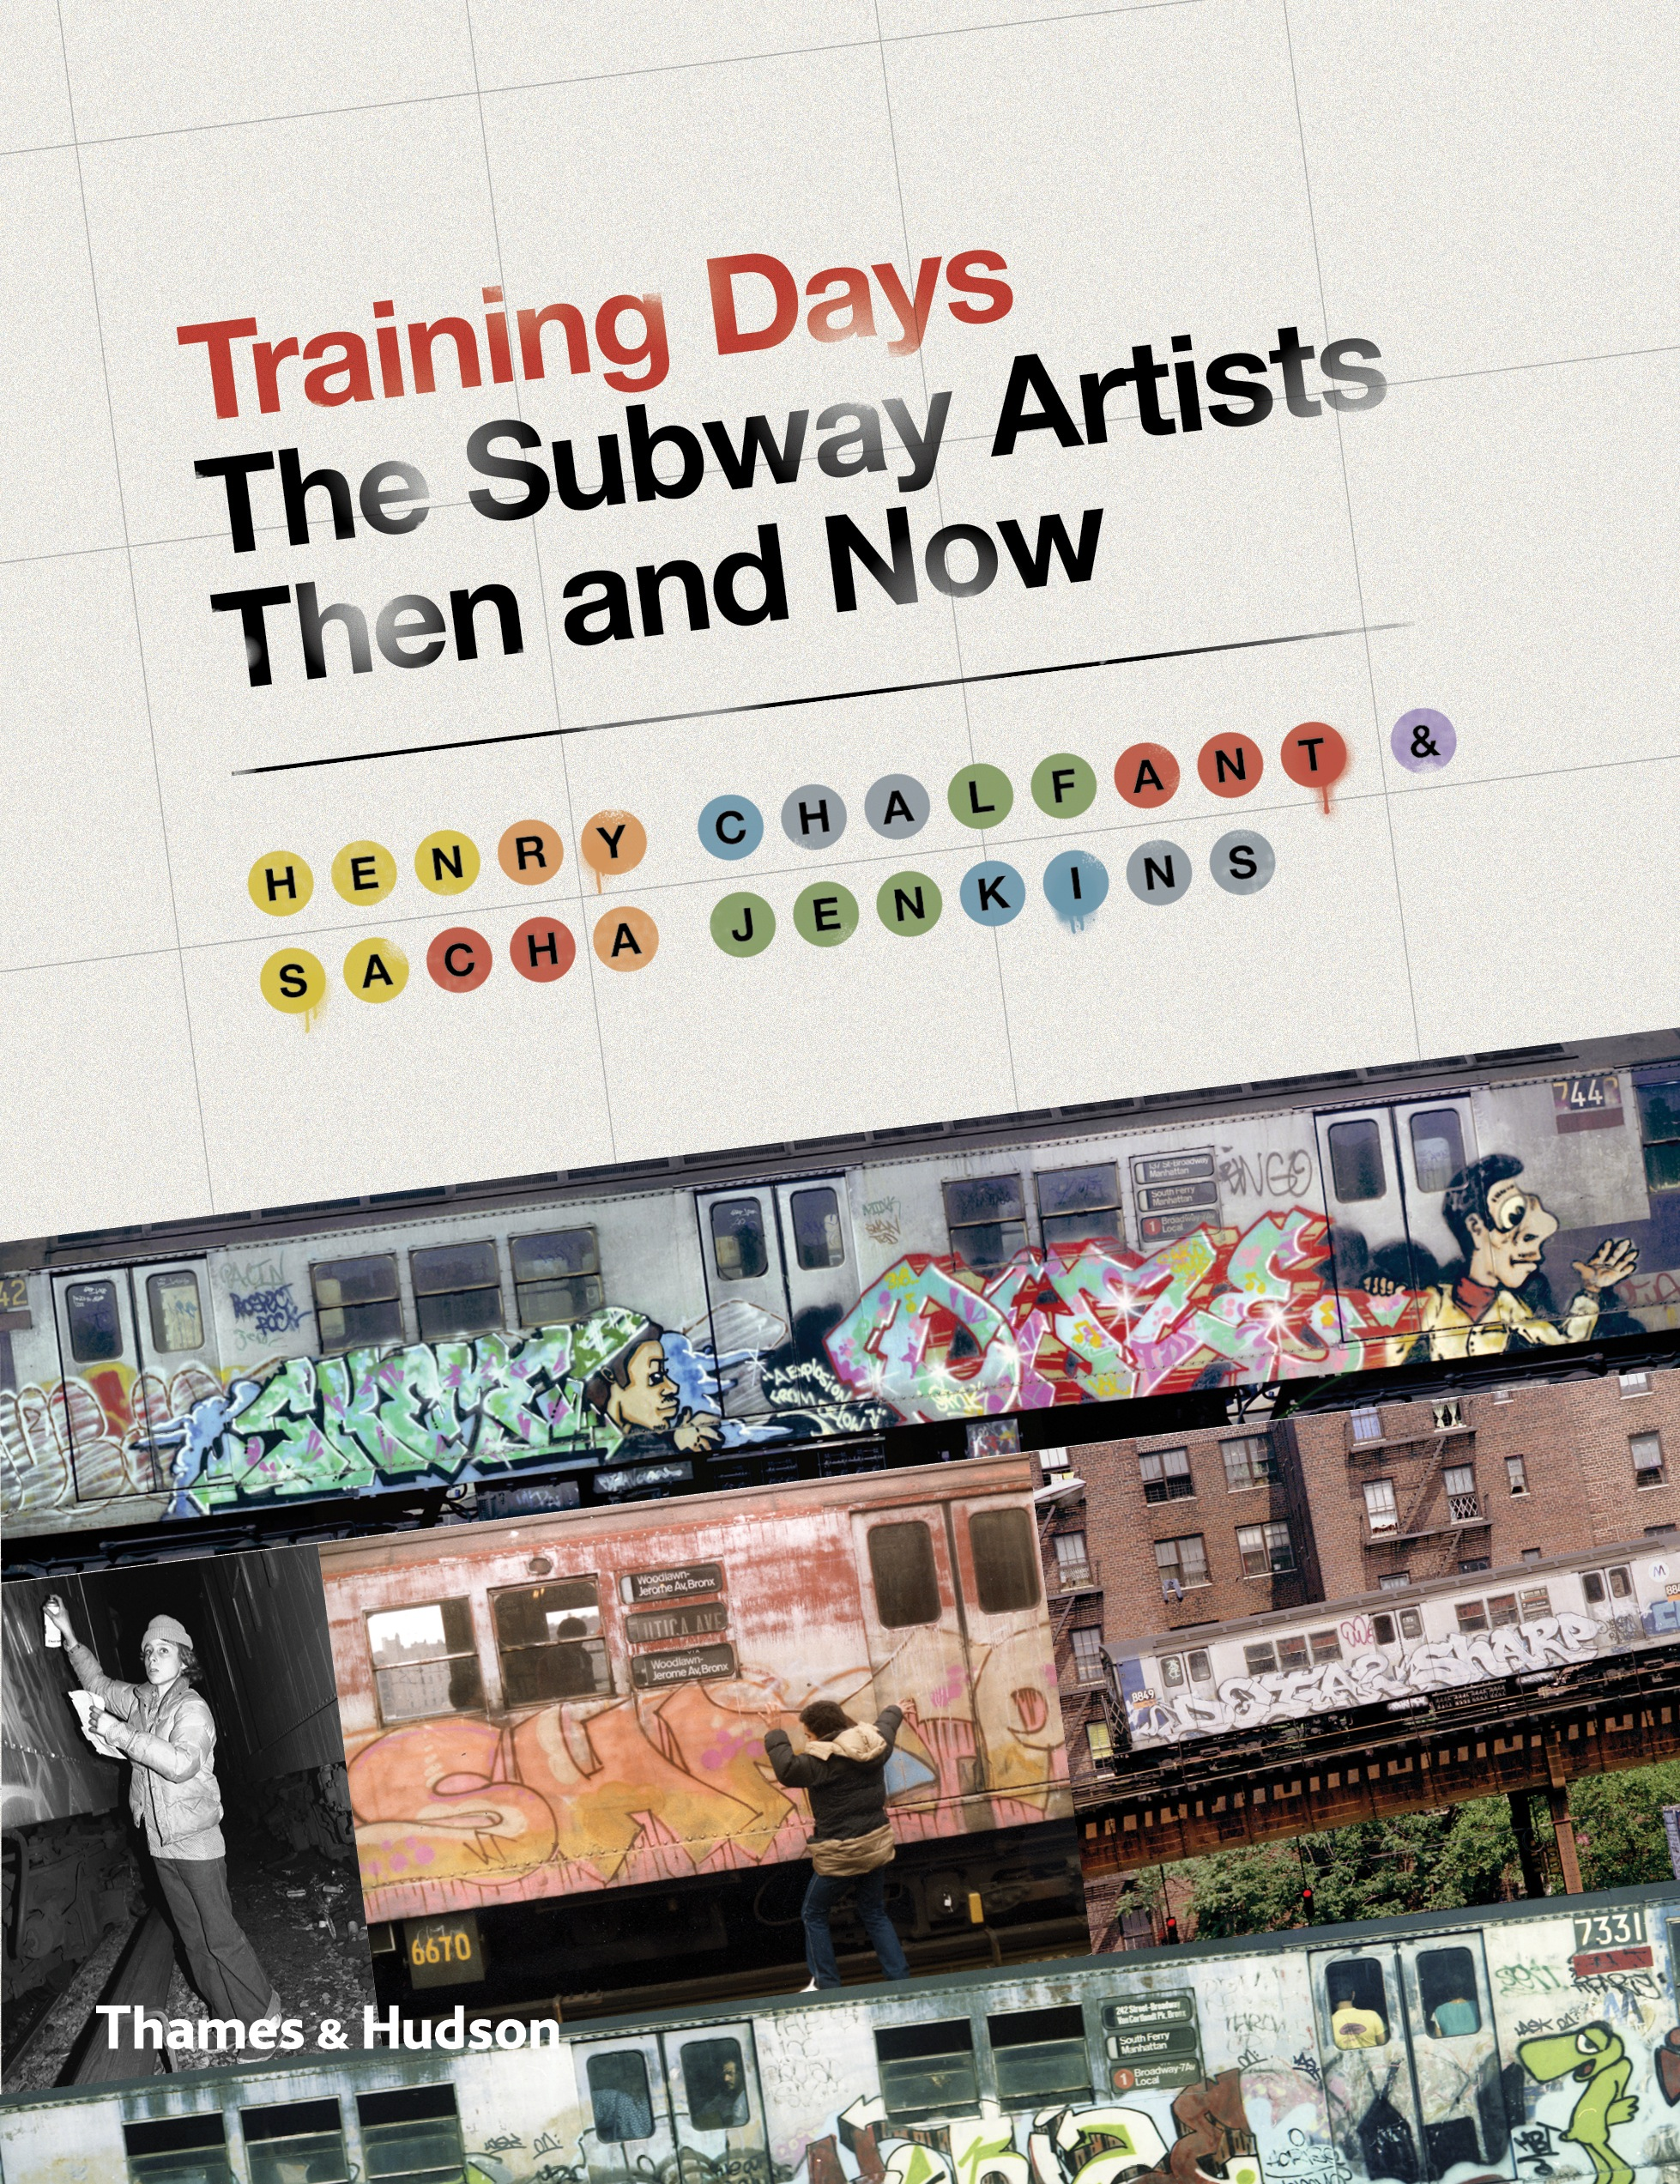 Book Launch: Training Days by Henry Chalfant & Sacha Jenkins